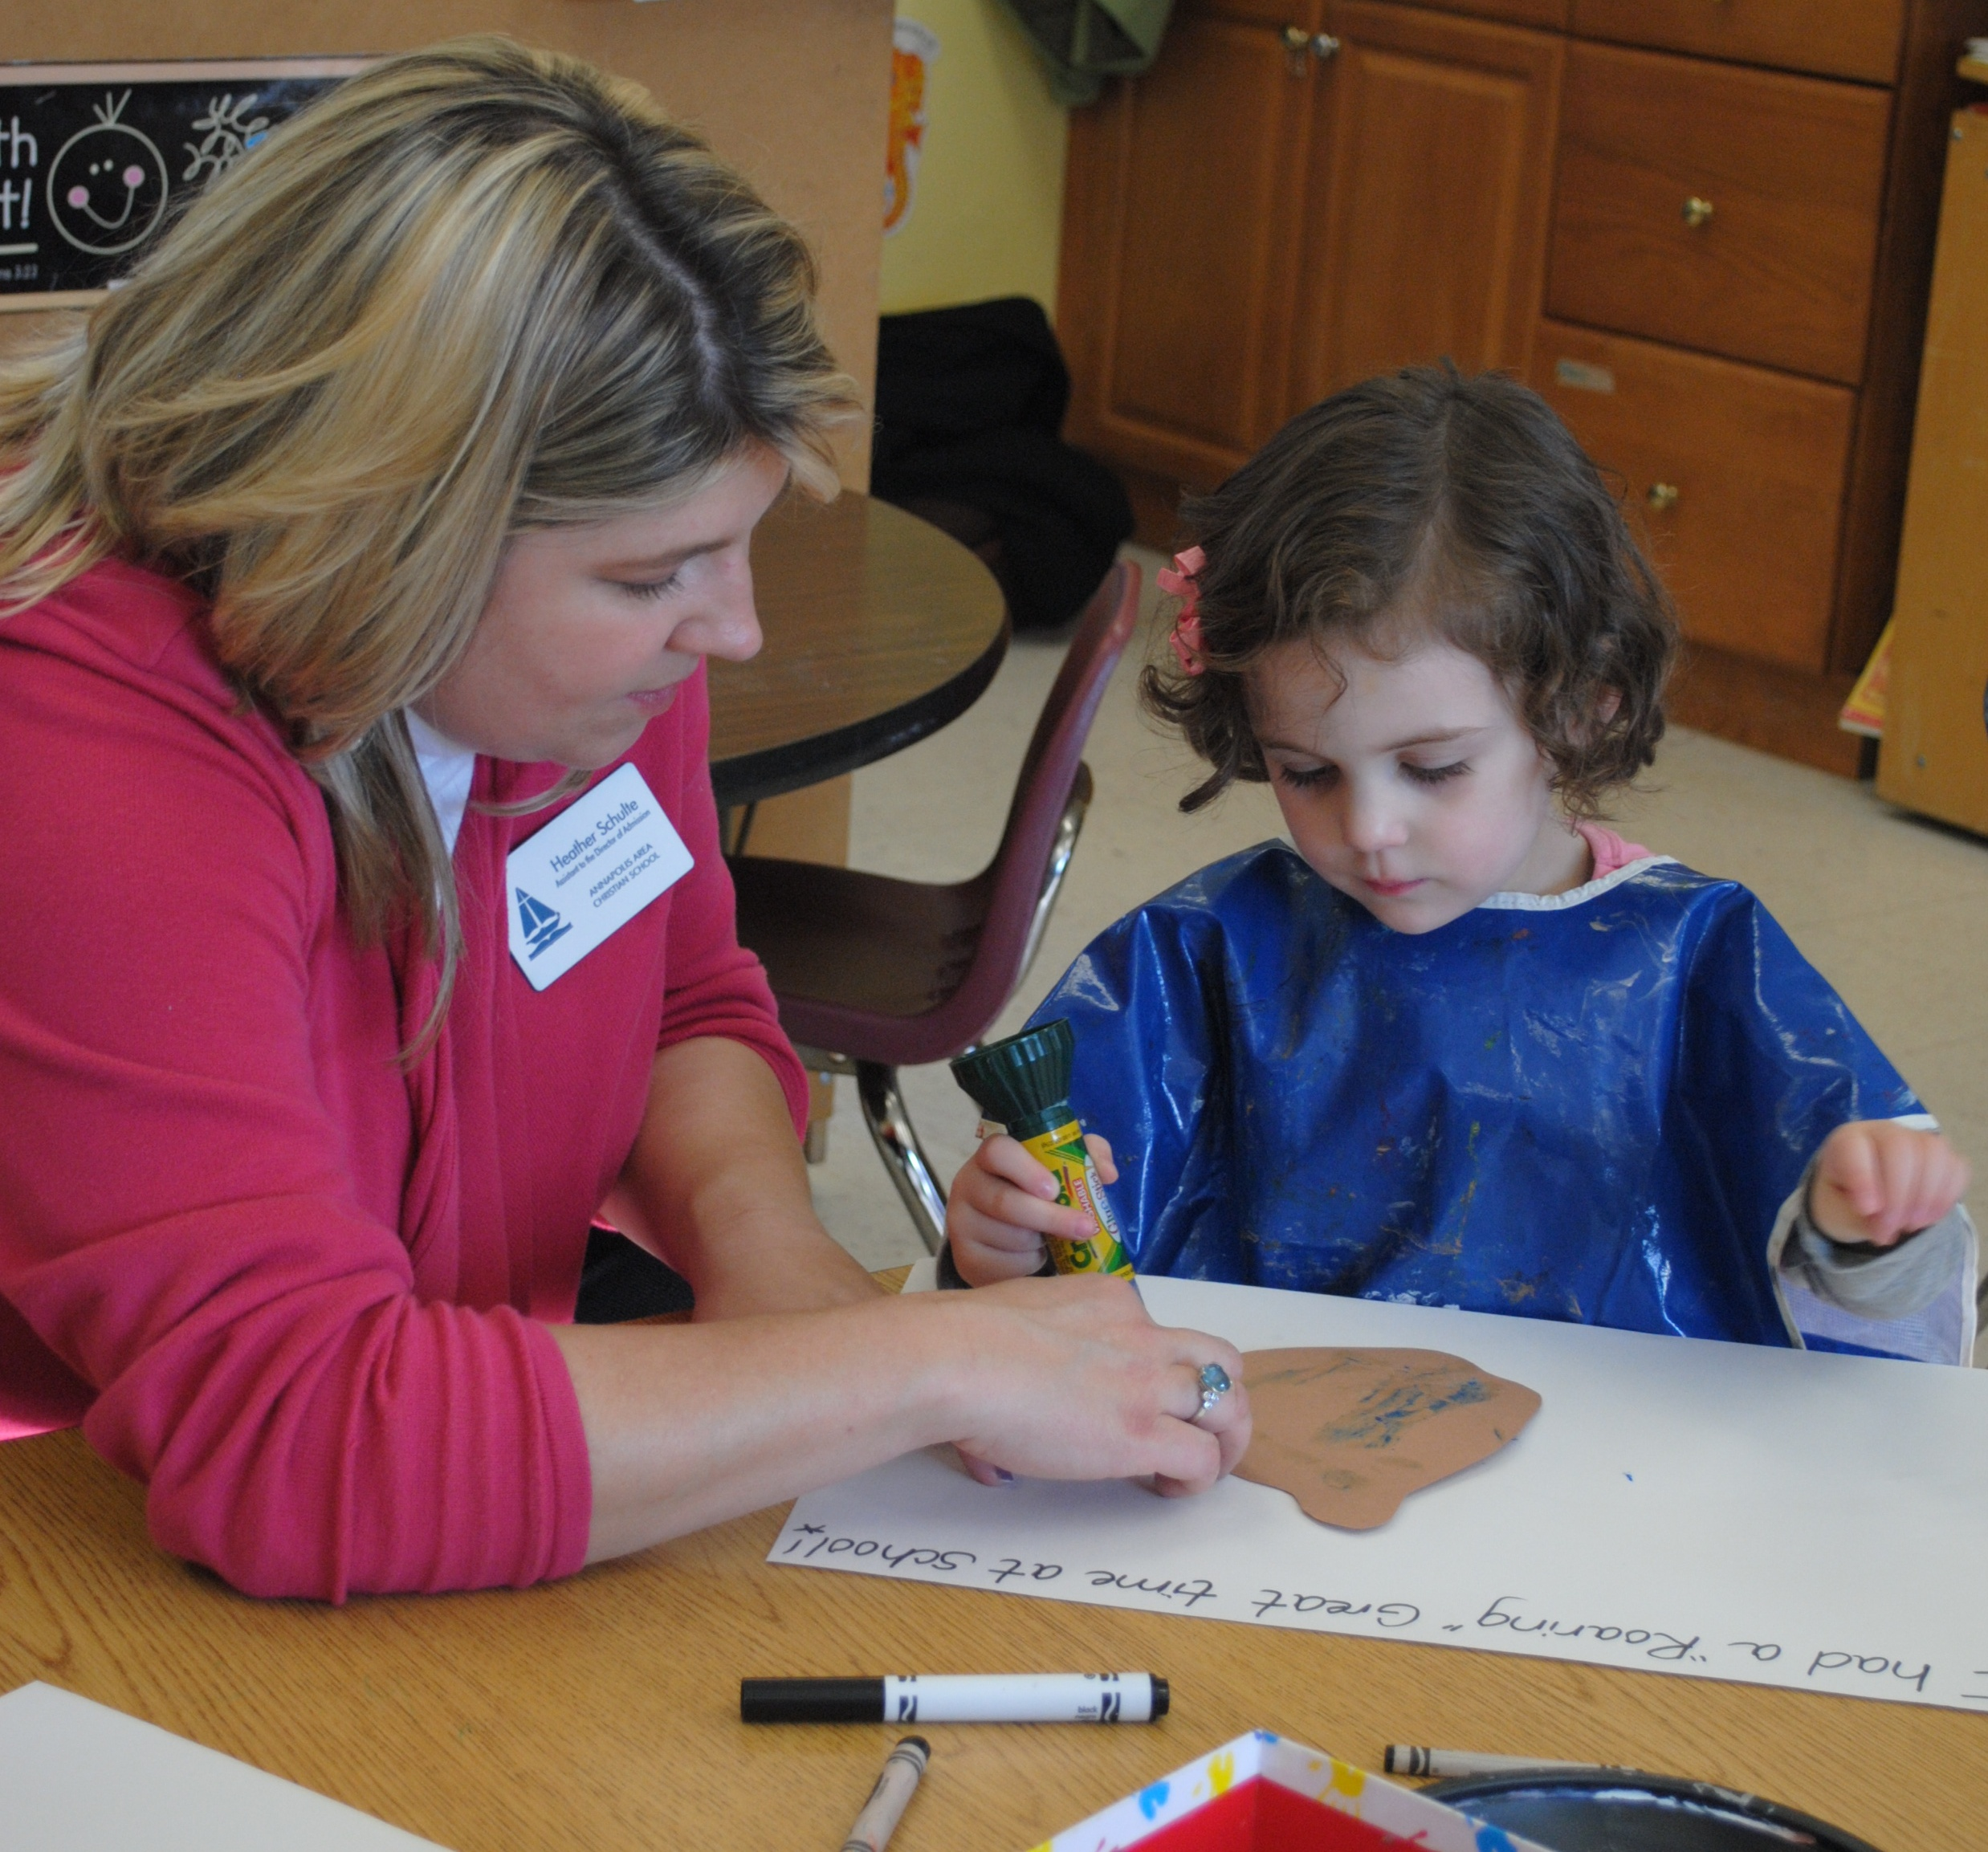 Experiencing a mock school day, Heather Schulte, Assistant to the Director of Admission, works with one of the participants